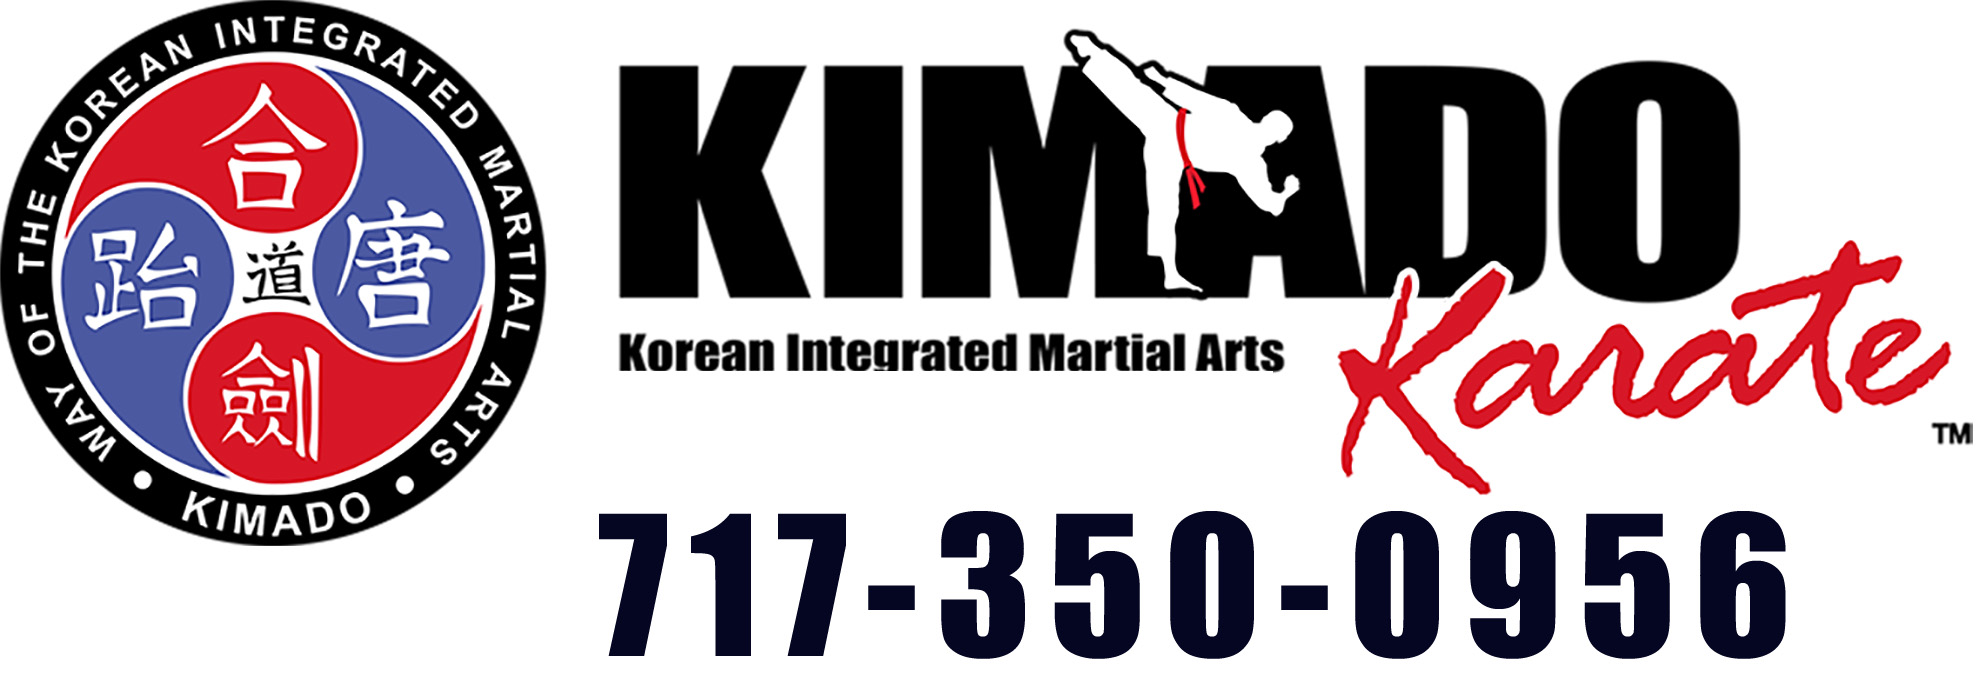 Korean Integrated Martial Arts